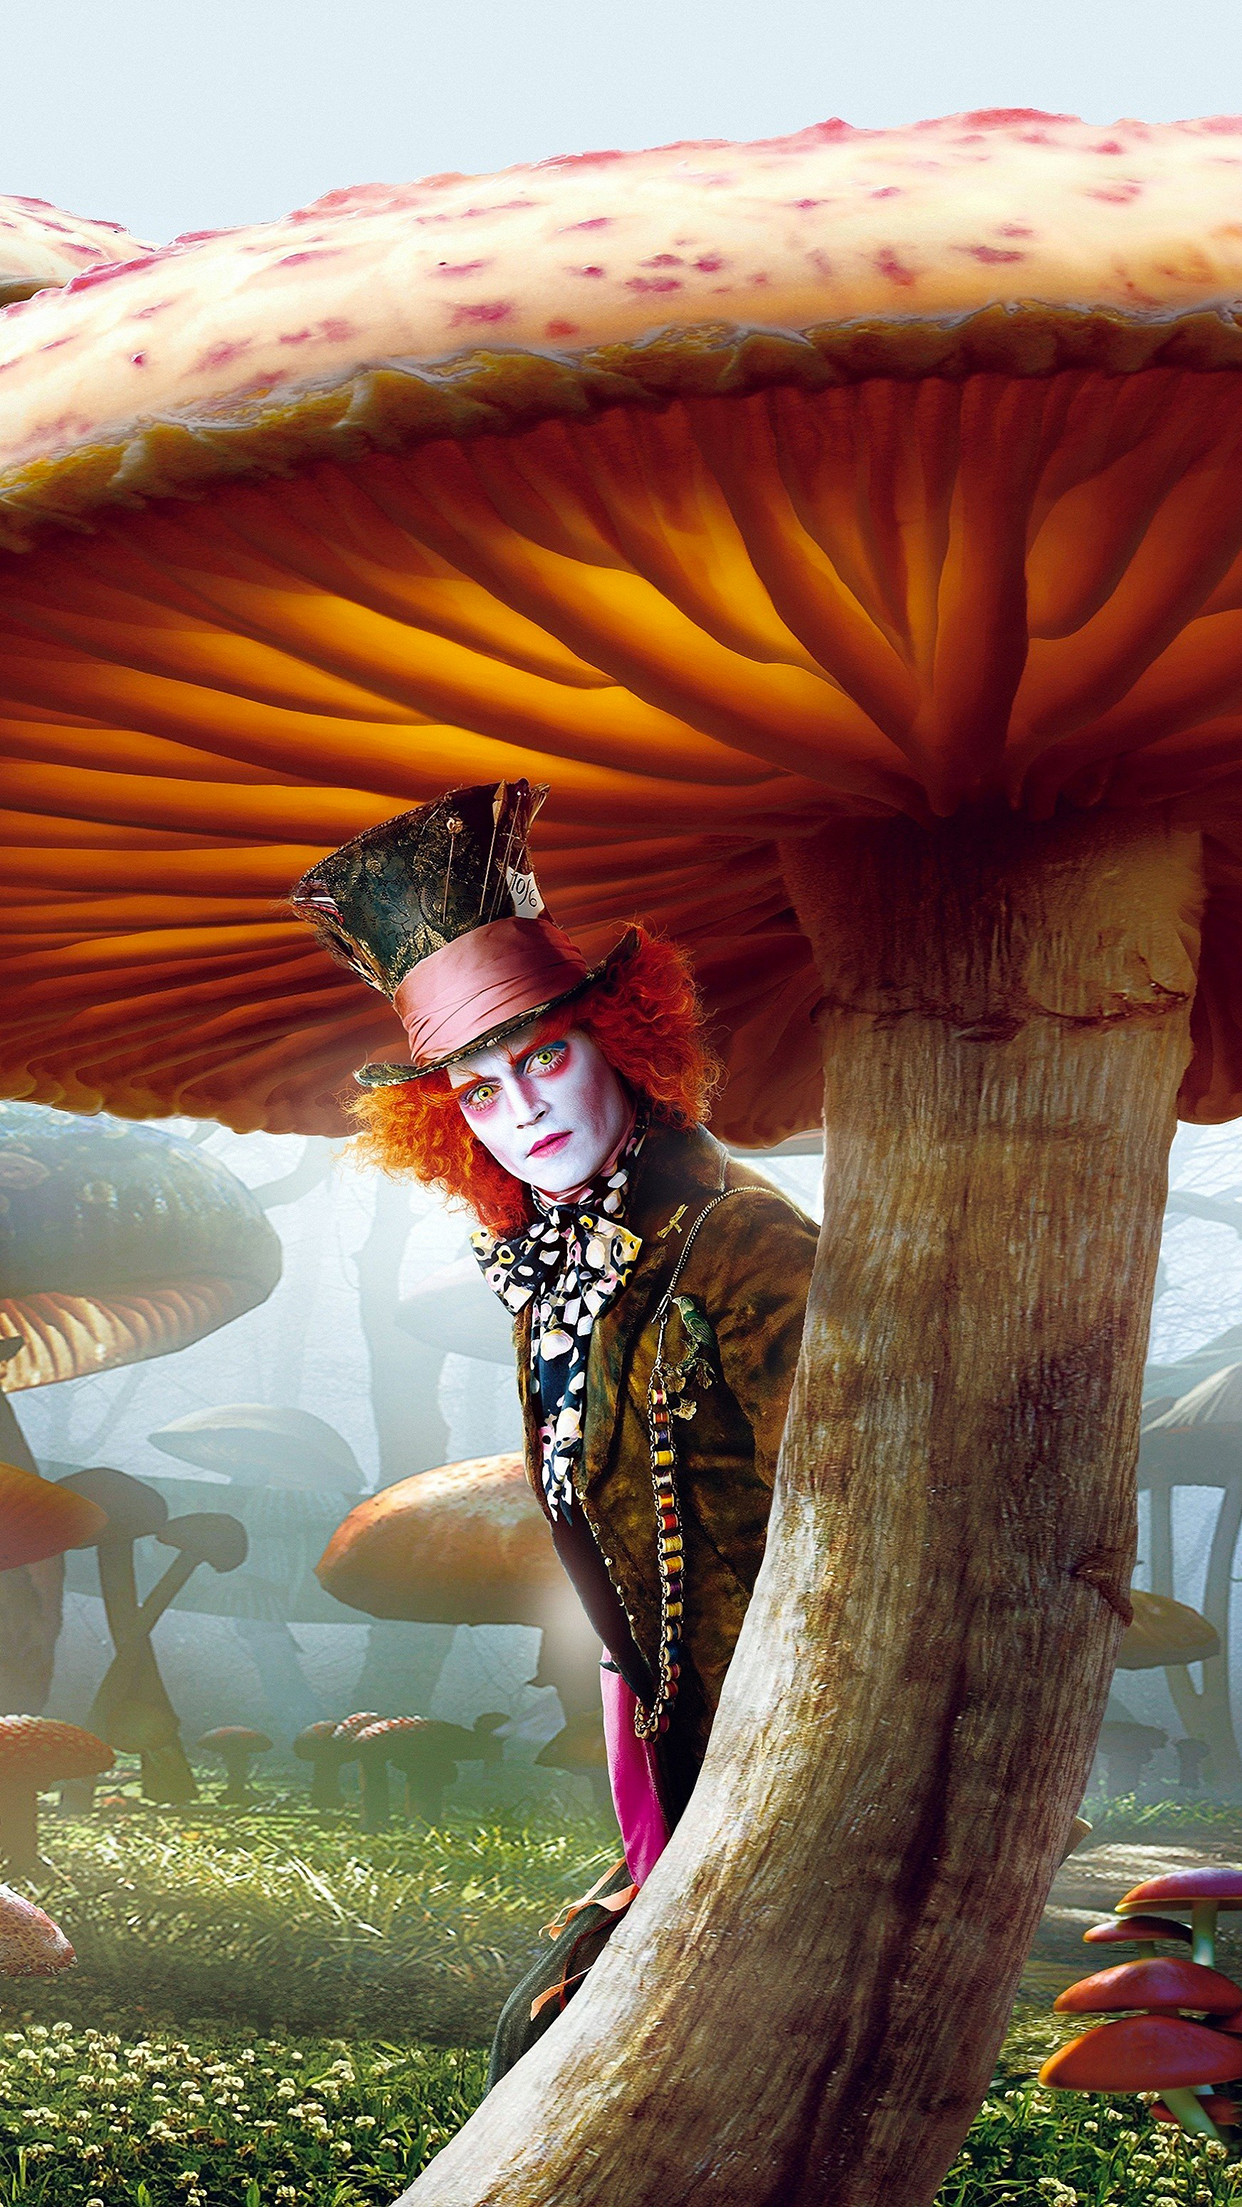 1242x2208 Alice-in-Wonderland-depp-mad-hatter-3Wallpapers-iPhone-